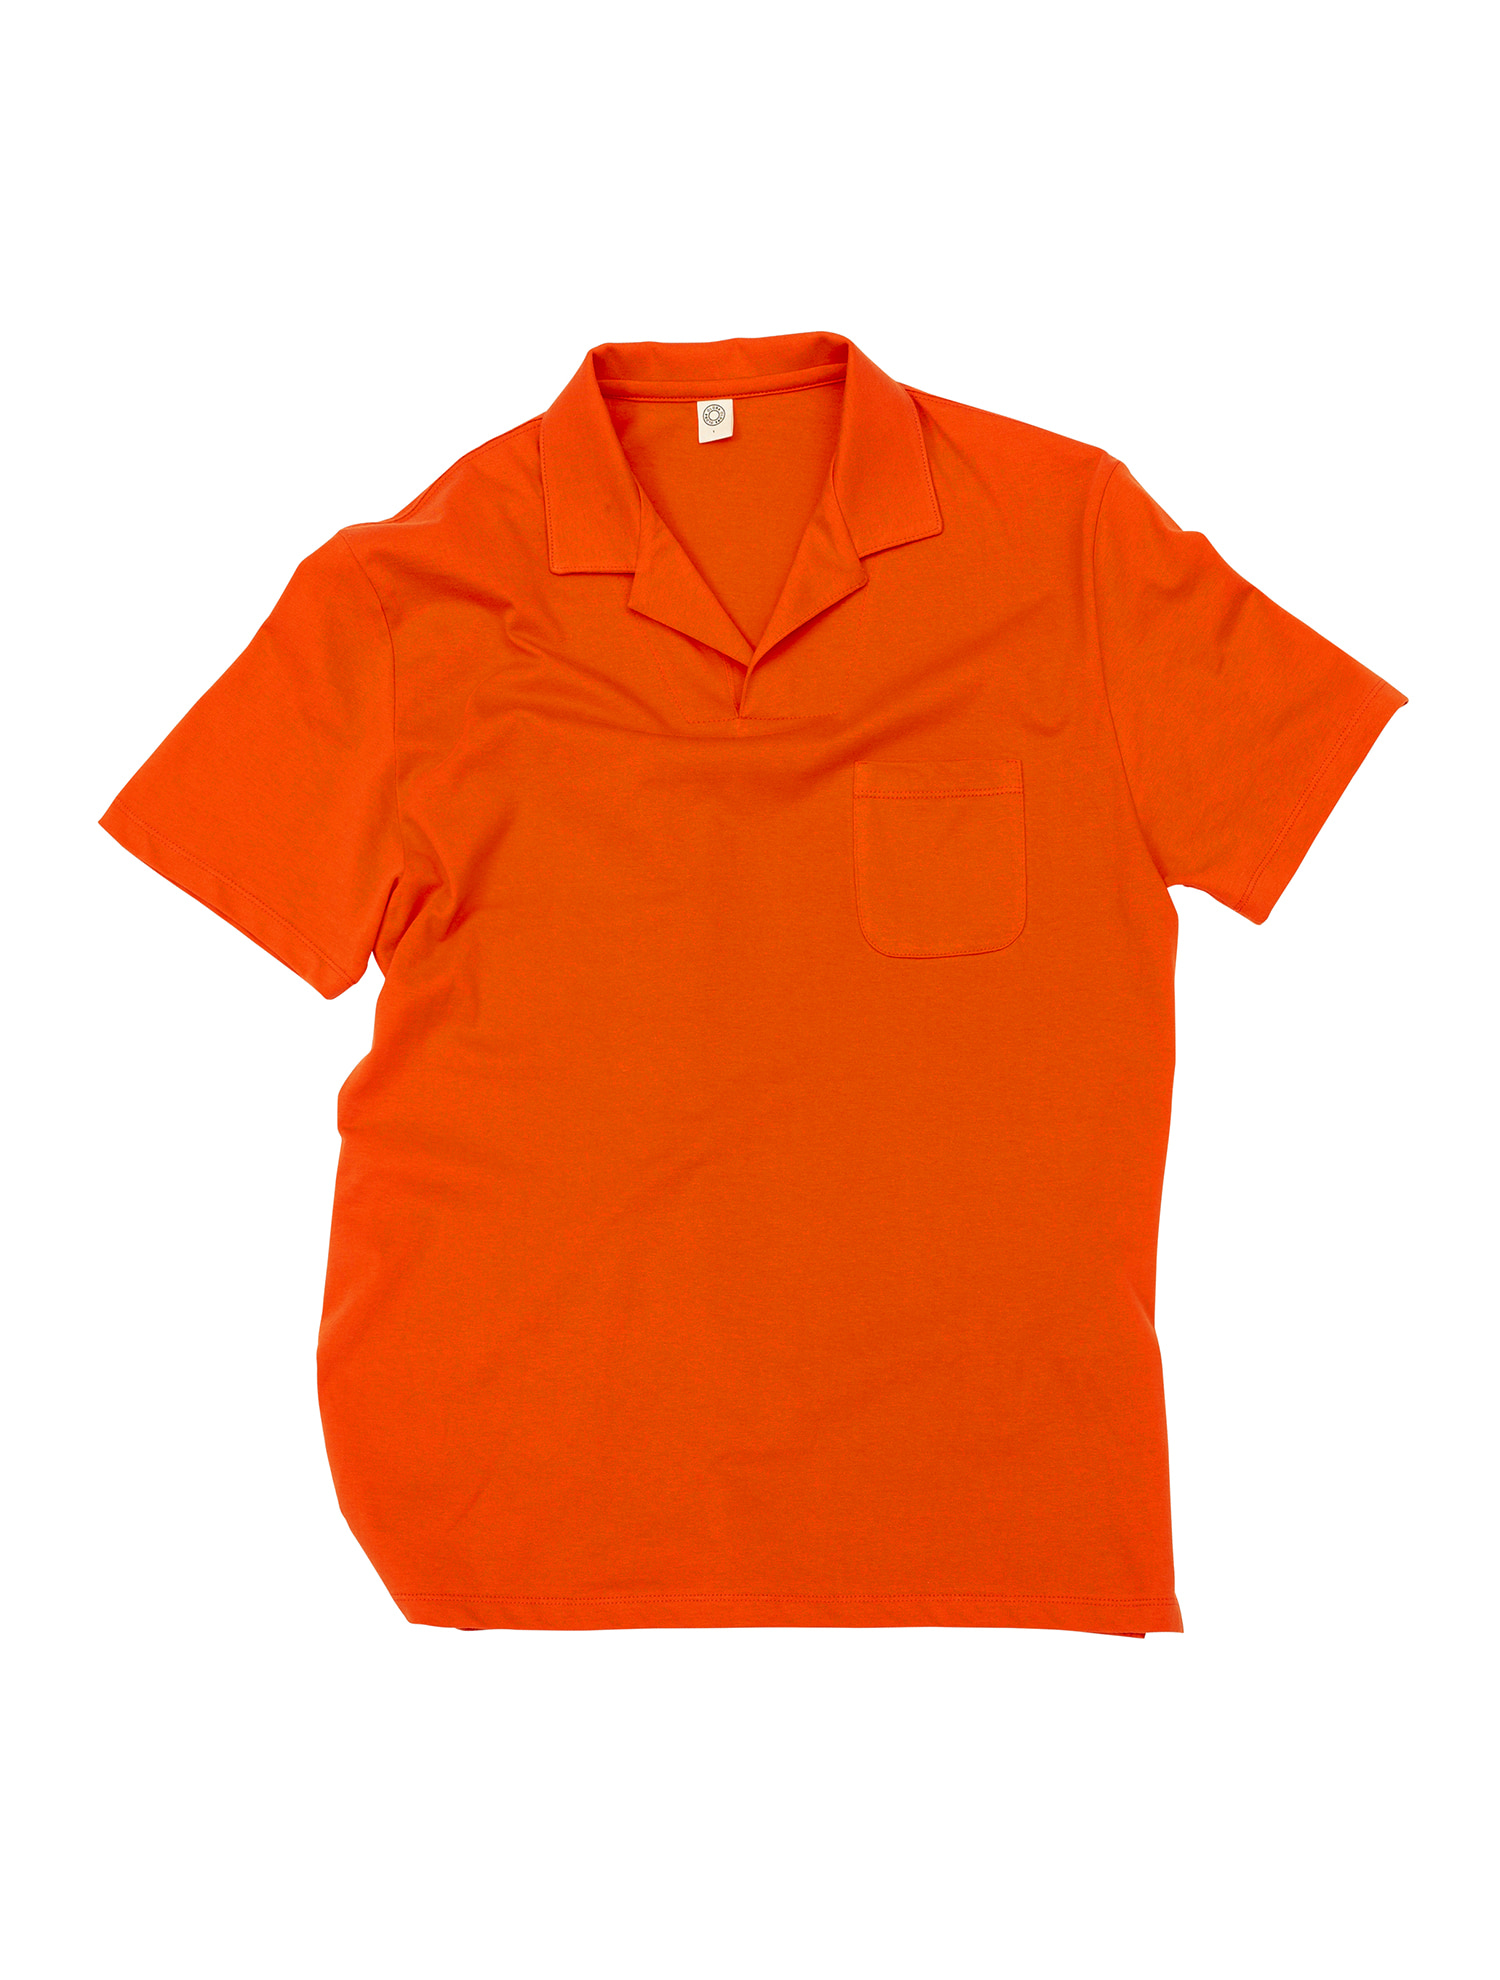 [올드비] GEN COTTON OPEN COLLAR POLO SHIRT CORAL ROSE